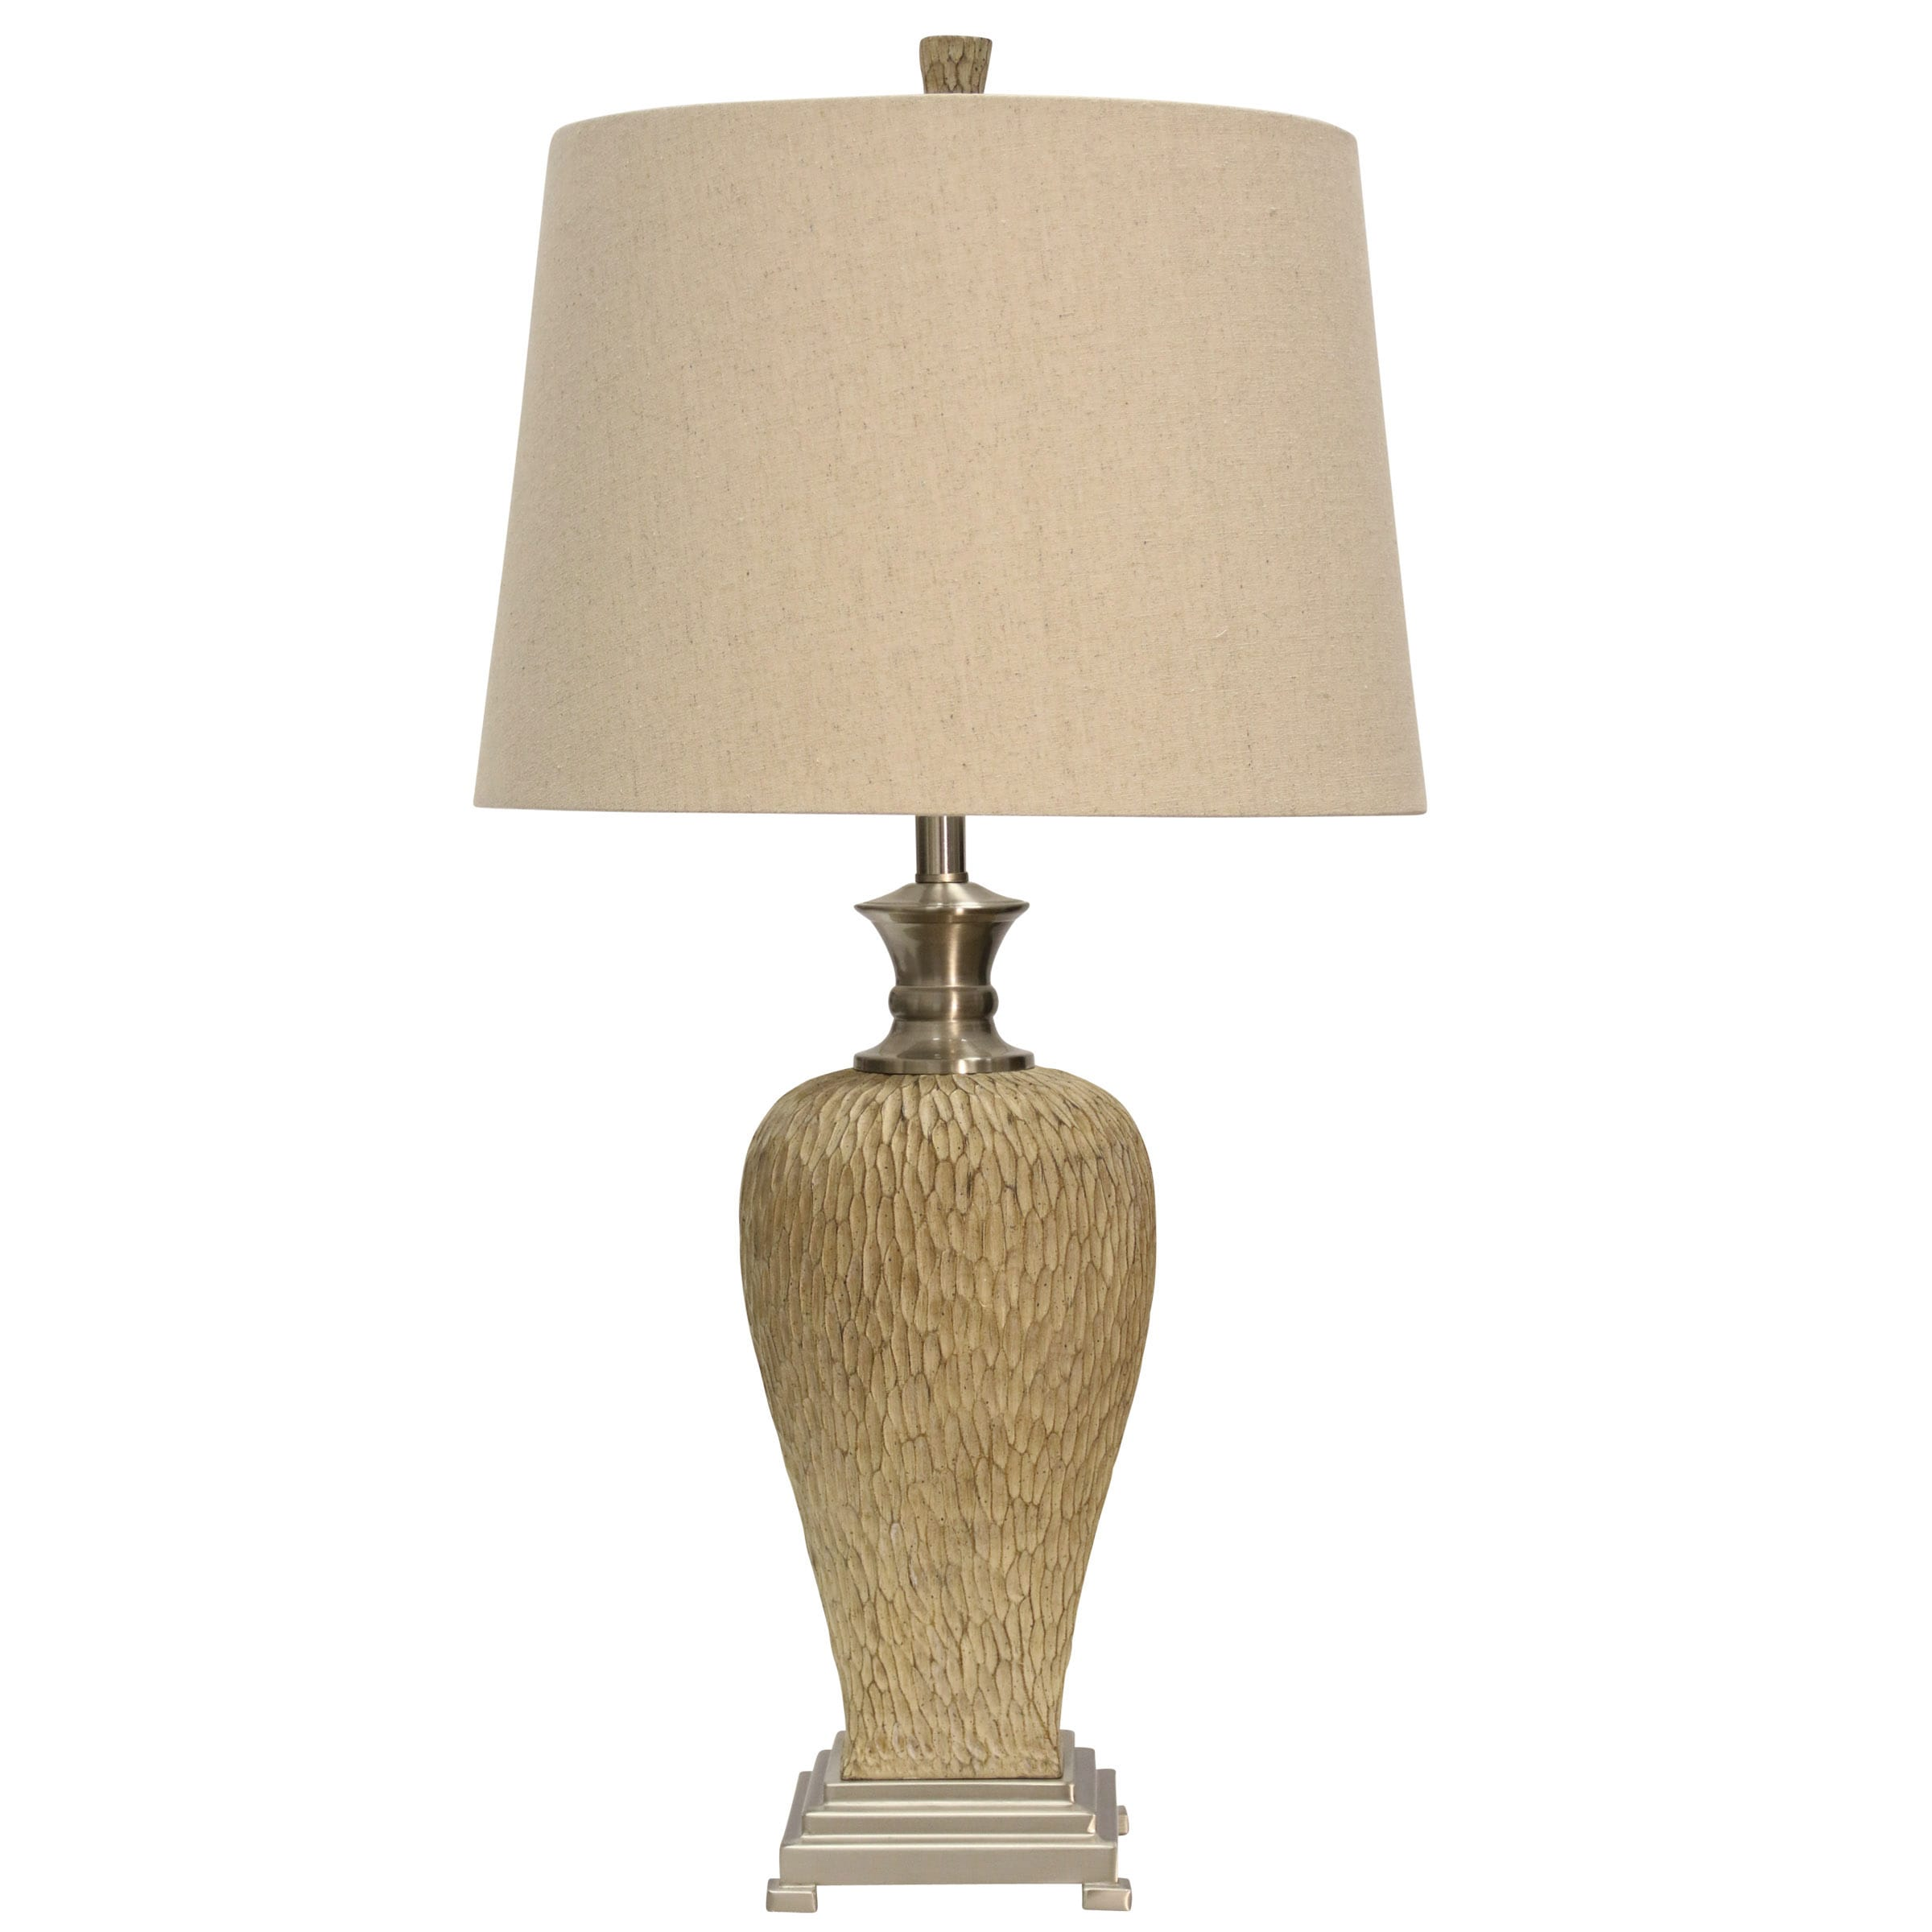 Plumette Table Lamp